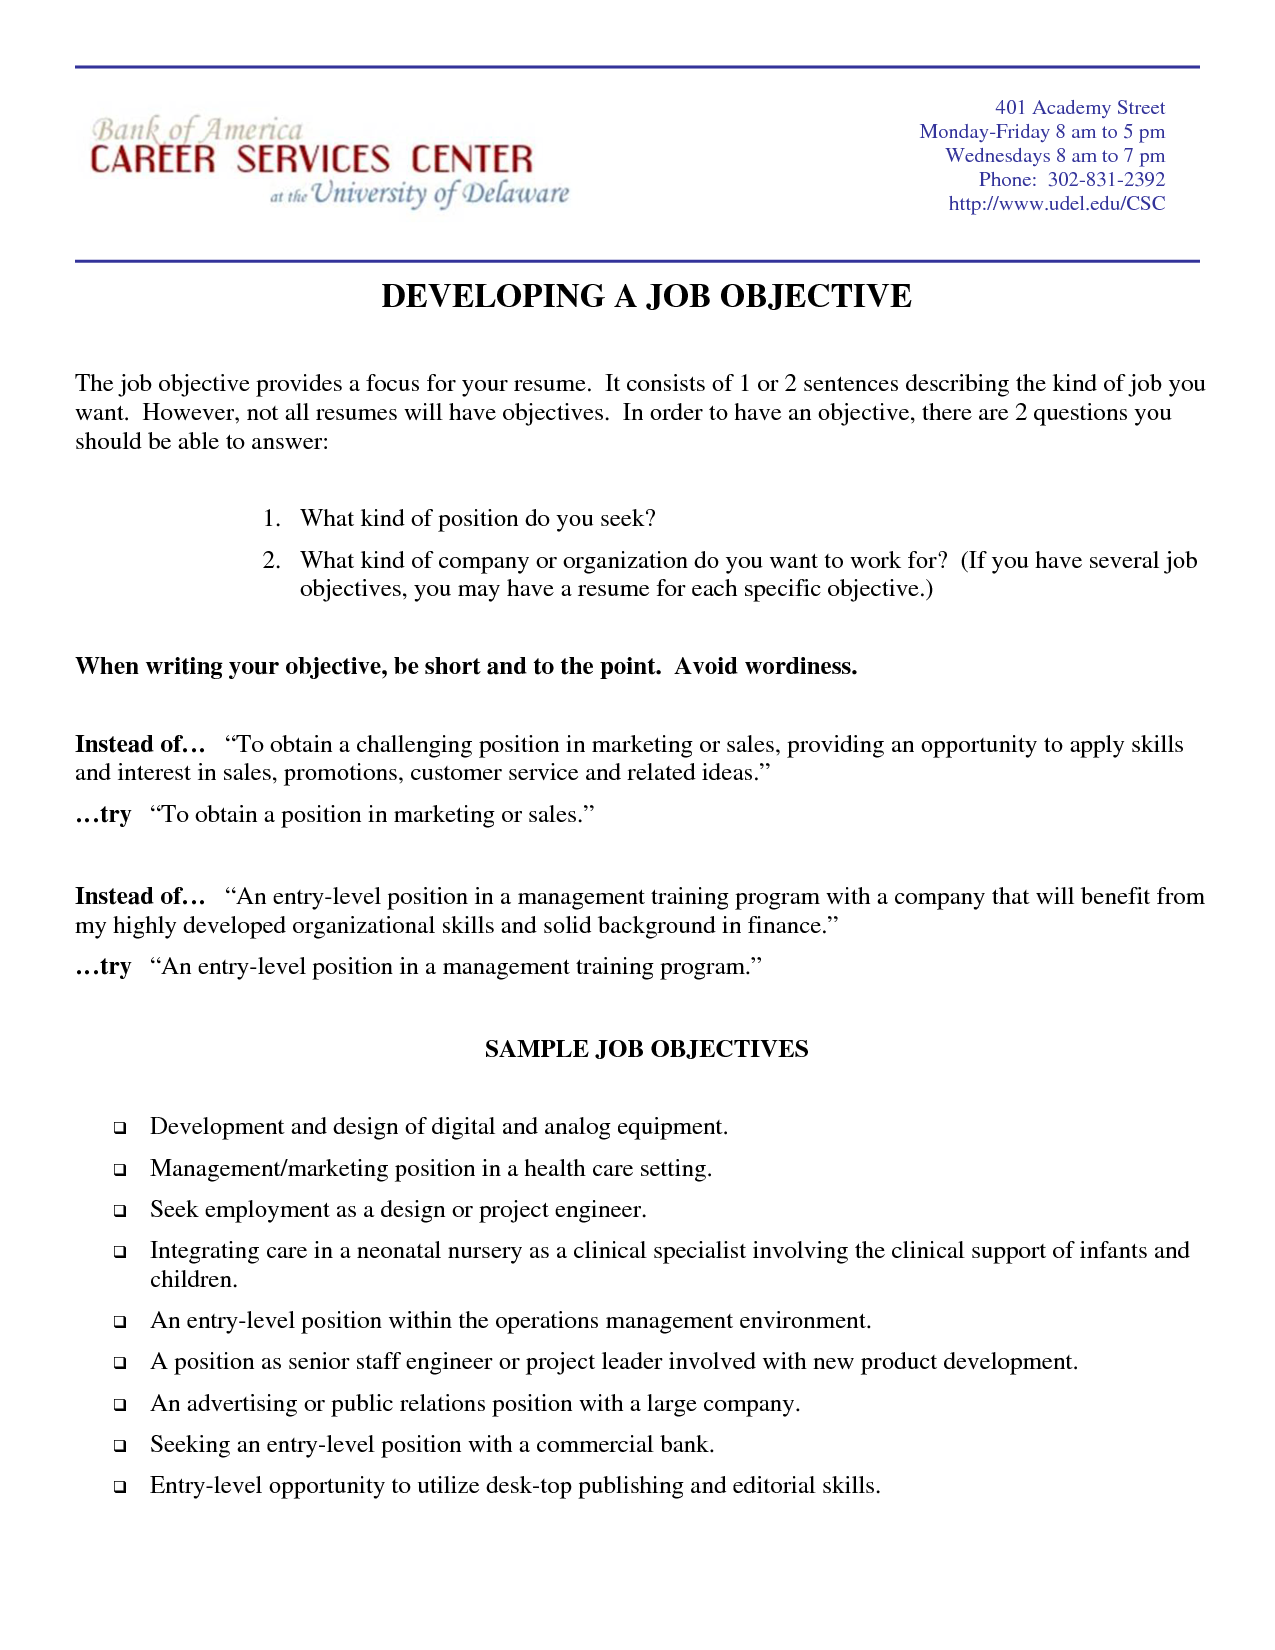 General Objectives For Resumes Marketing Resume Objective Samples Resumes Design The Relic